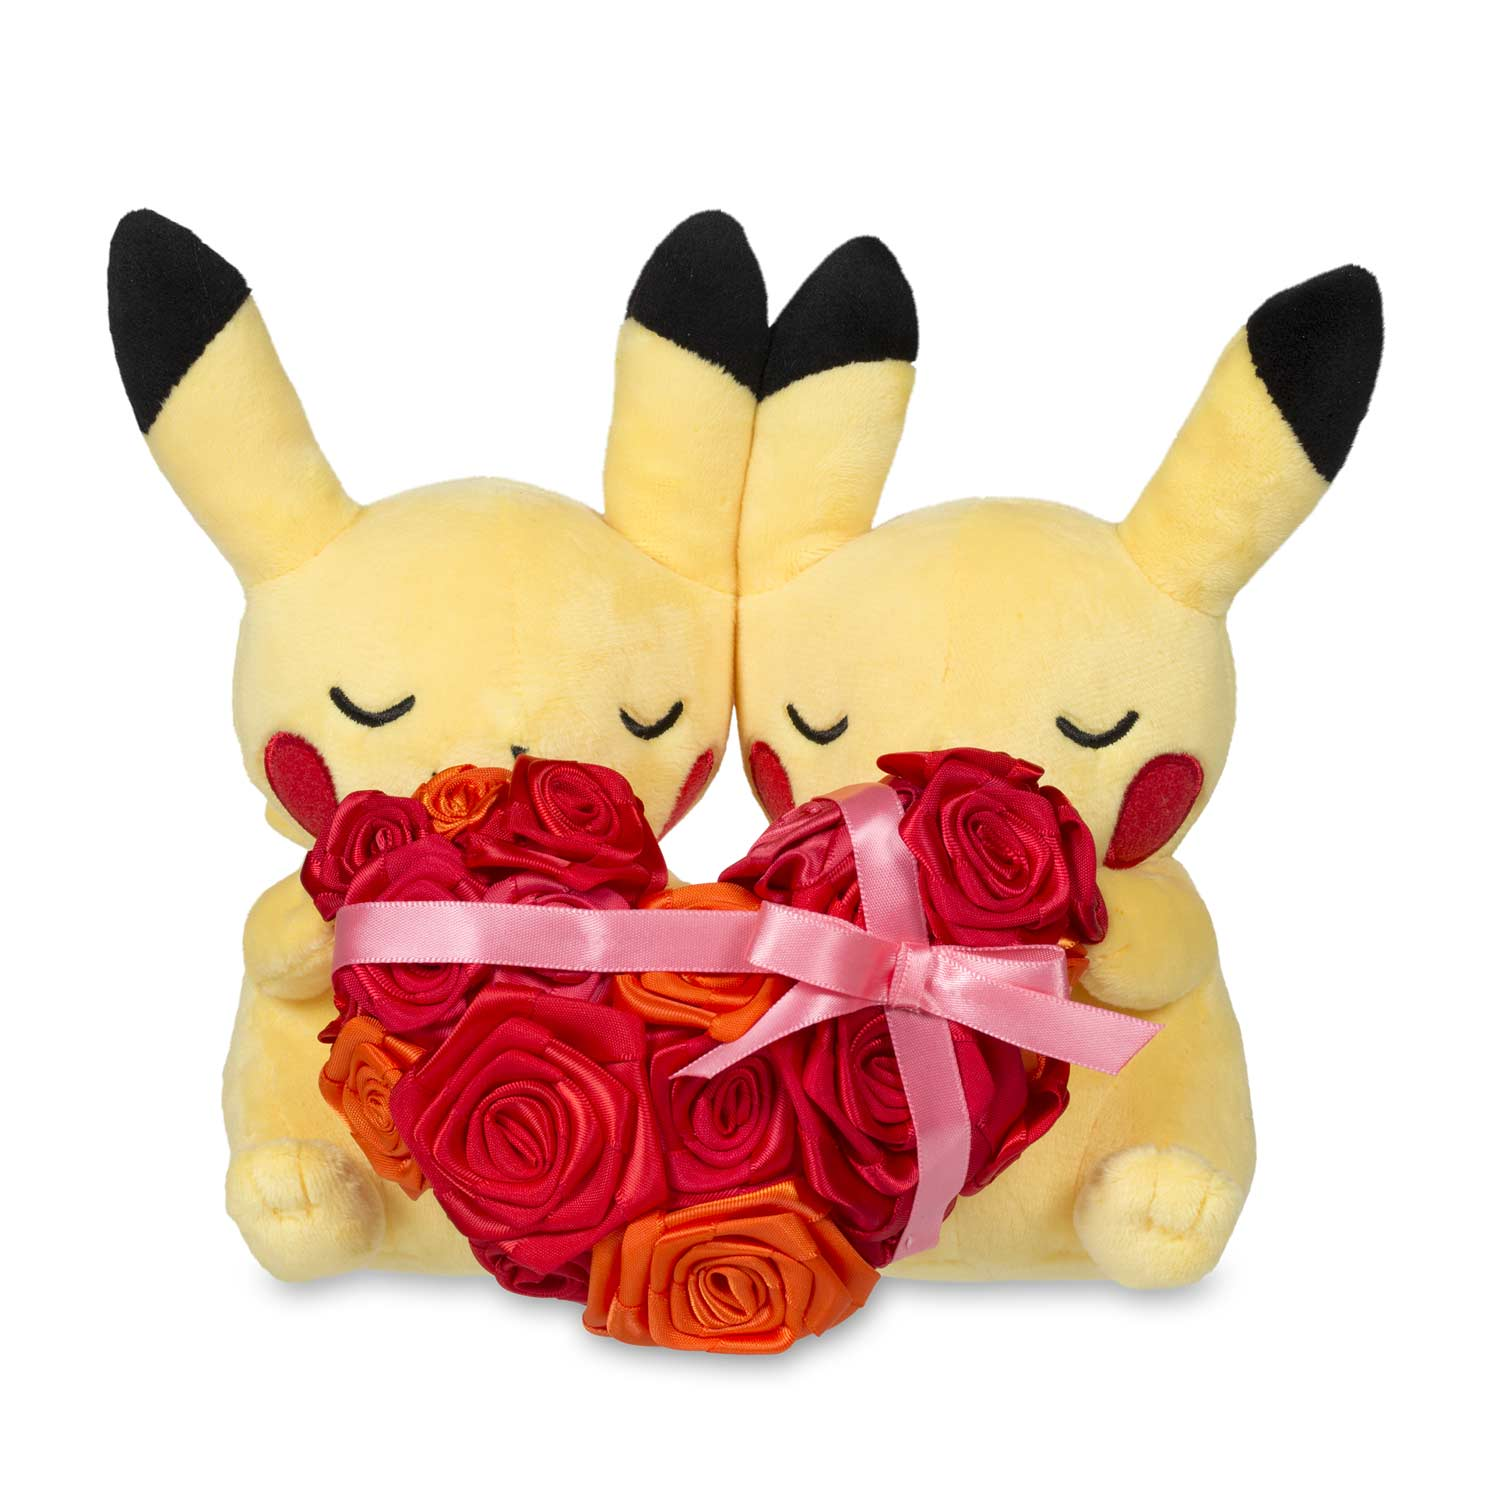 5b6ce768 Image for Paired Pikachu Celebrations: Sweetheart Pikachu Plush - 8 In.  from Pokemon Center